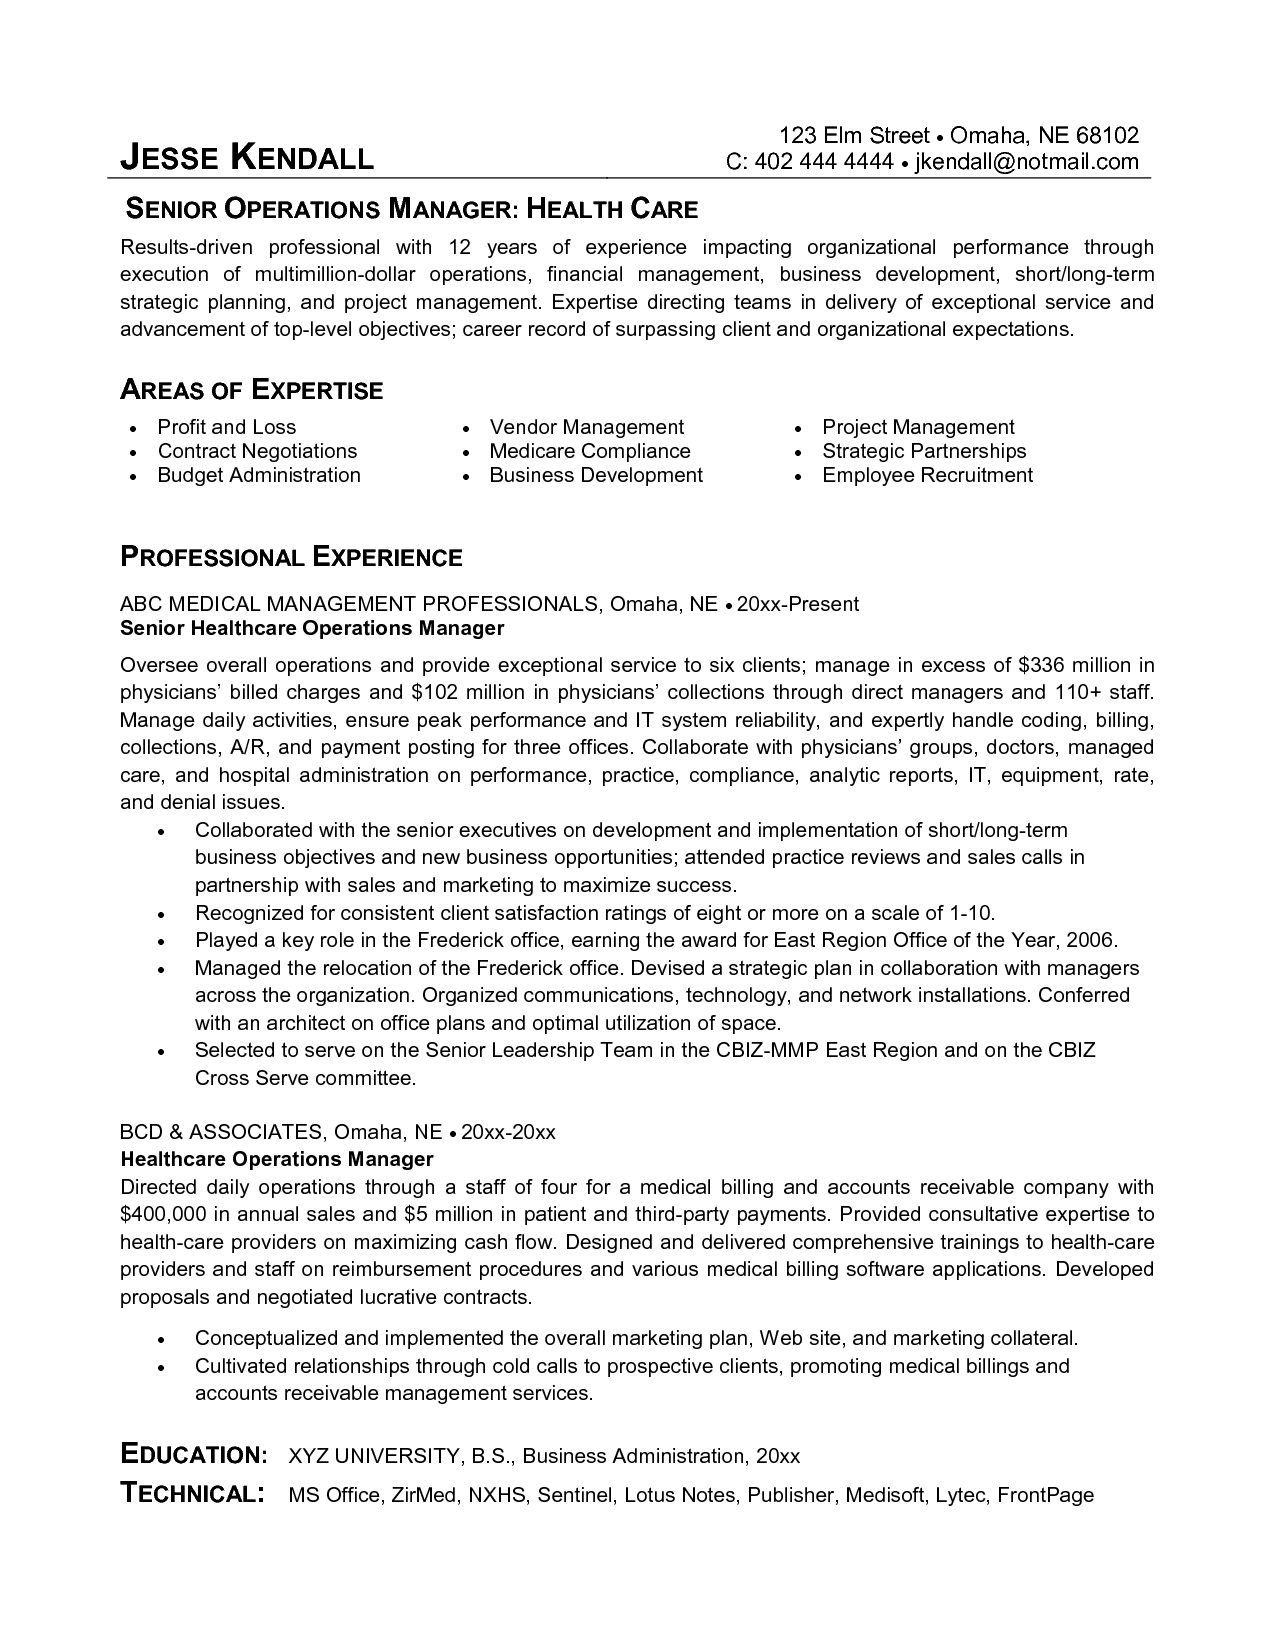 Resume Examples Healthcare Management #examples #healthcare ...